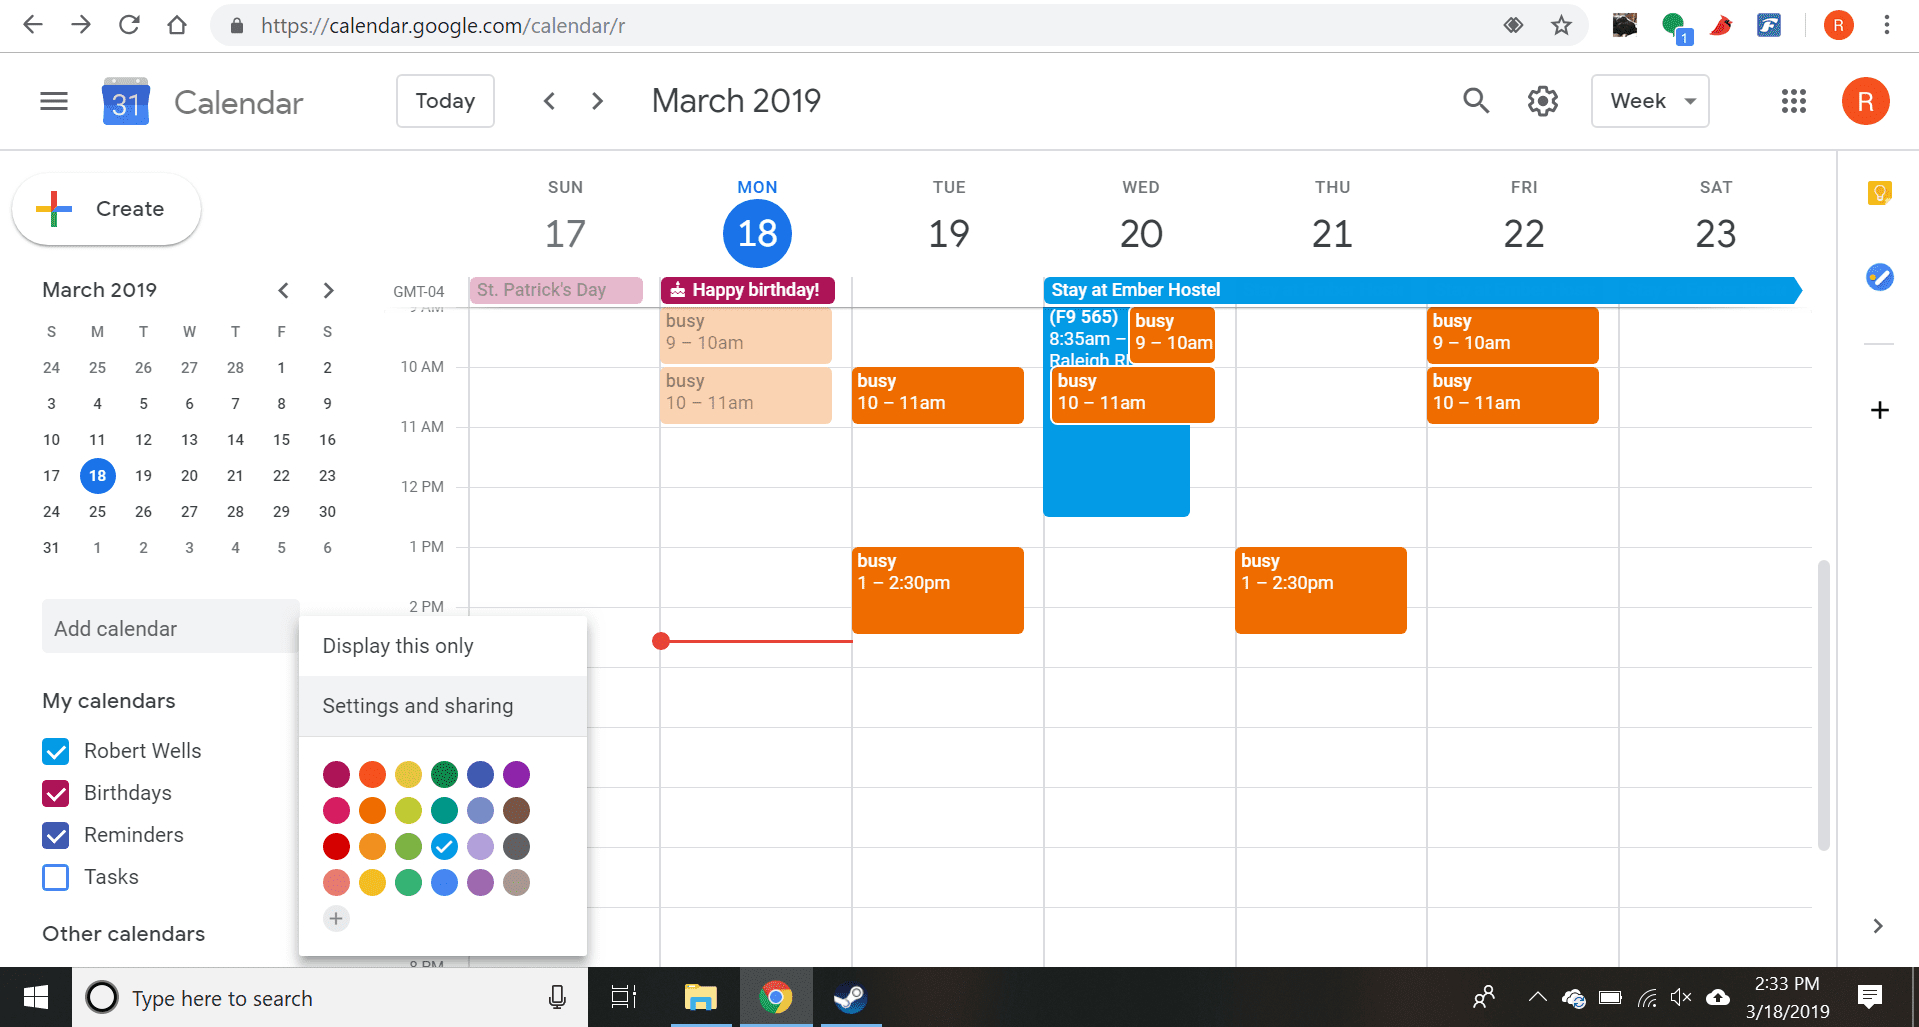 How To Copy Google Calendar Events To Another Google Calendar